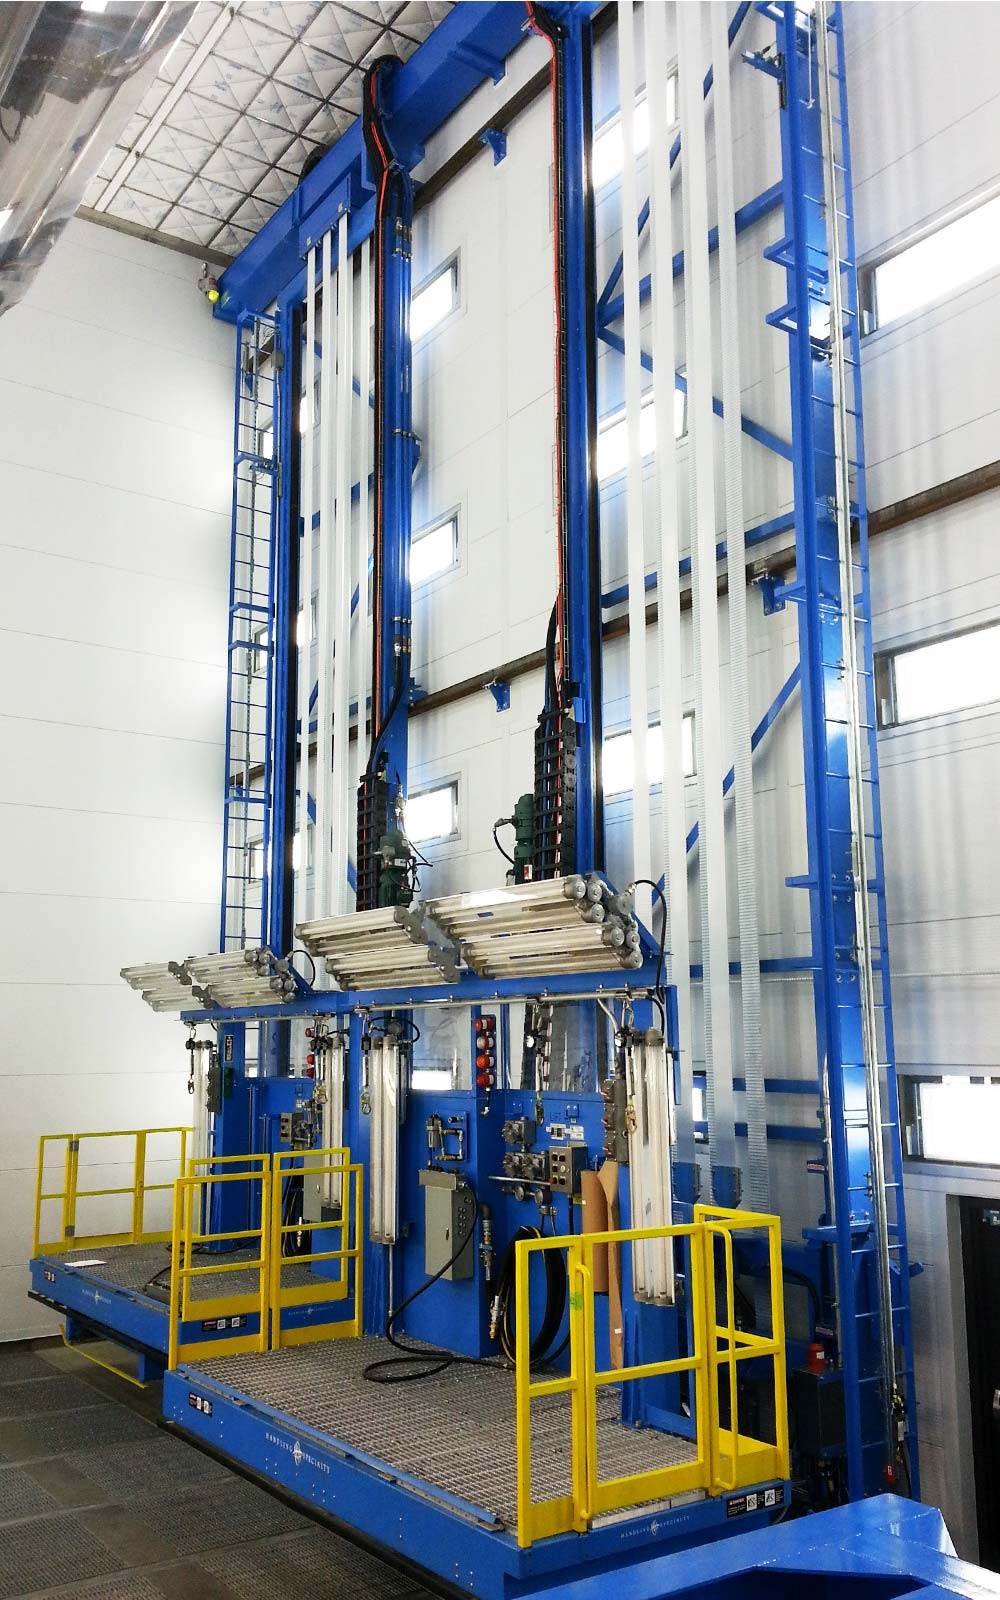 Max Advanced Brakes >> Explosion Proof Paint Booth Lifts for Aerospace Industry